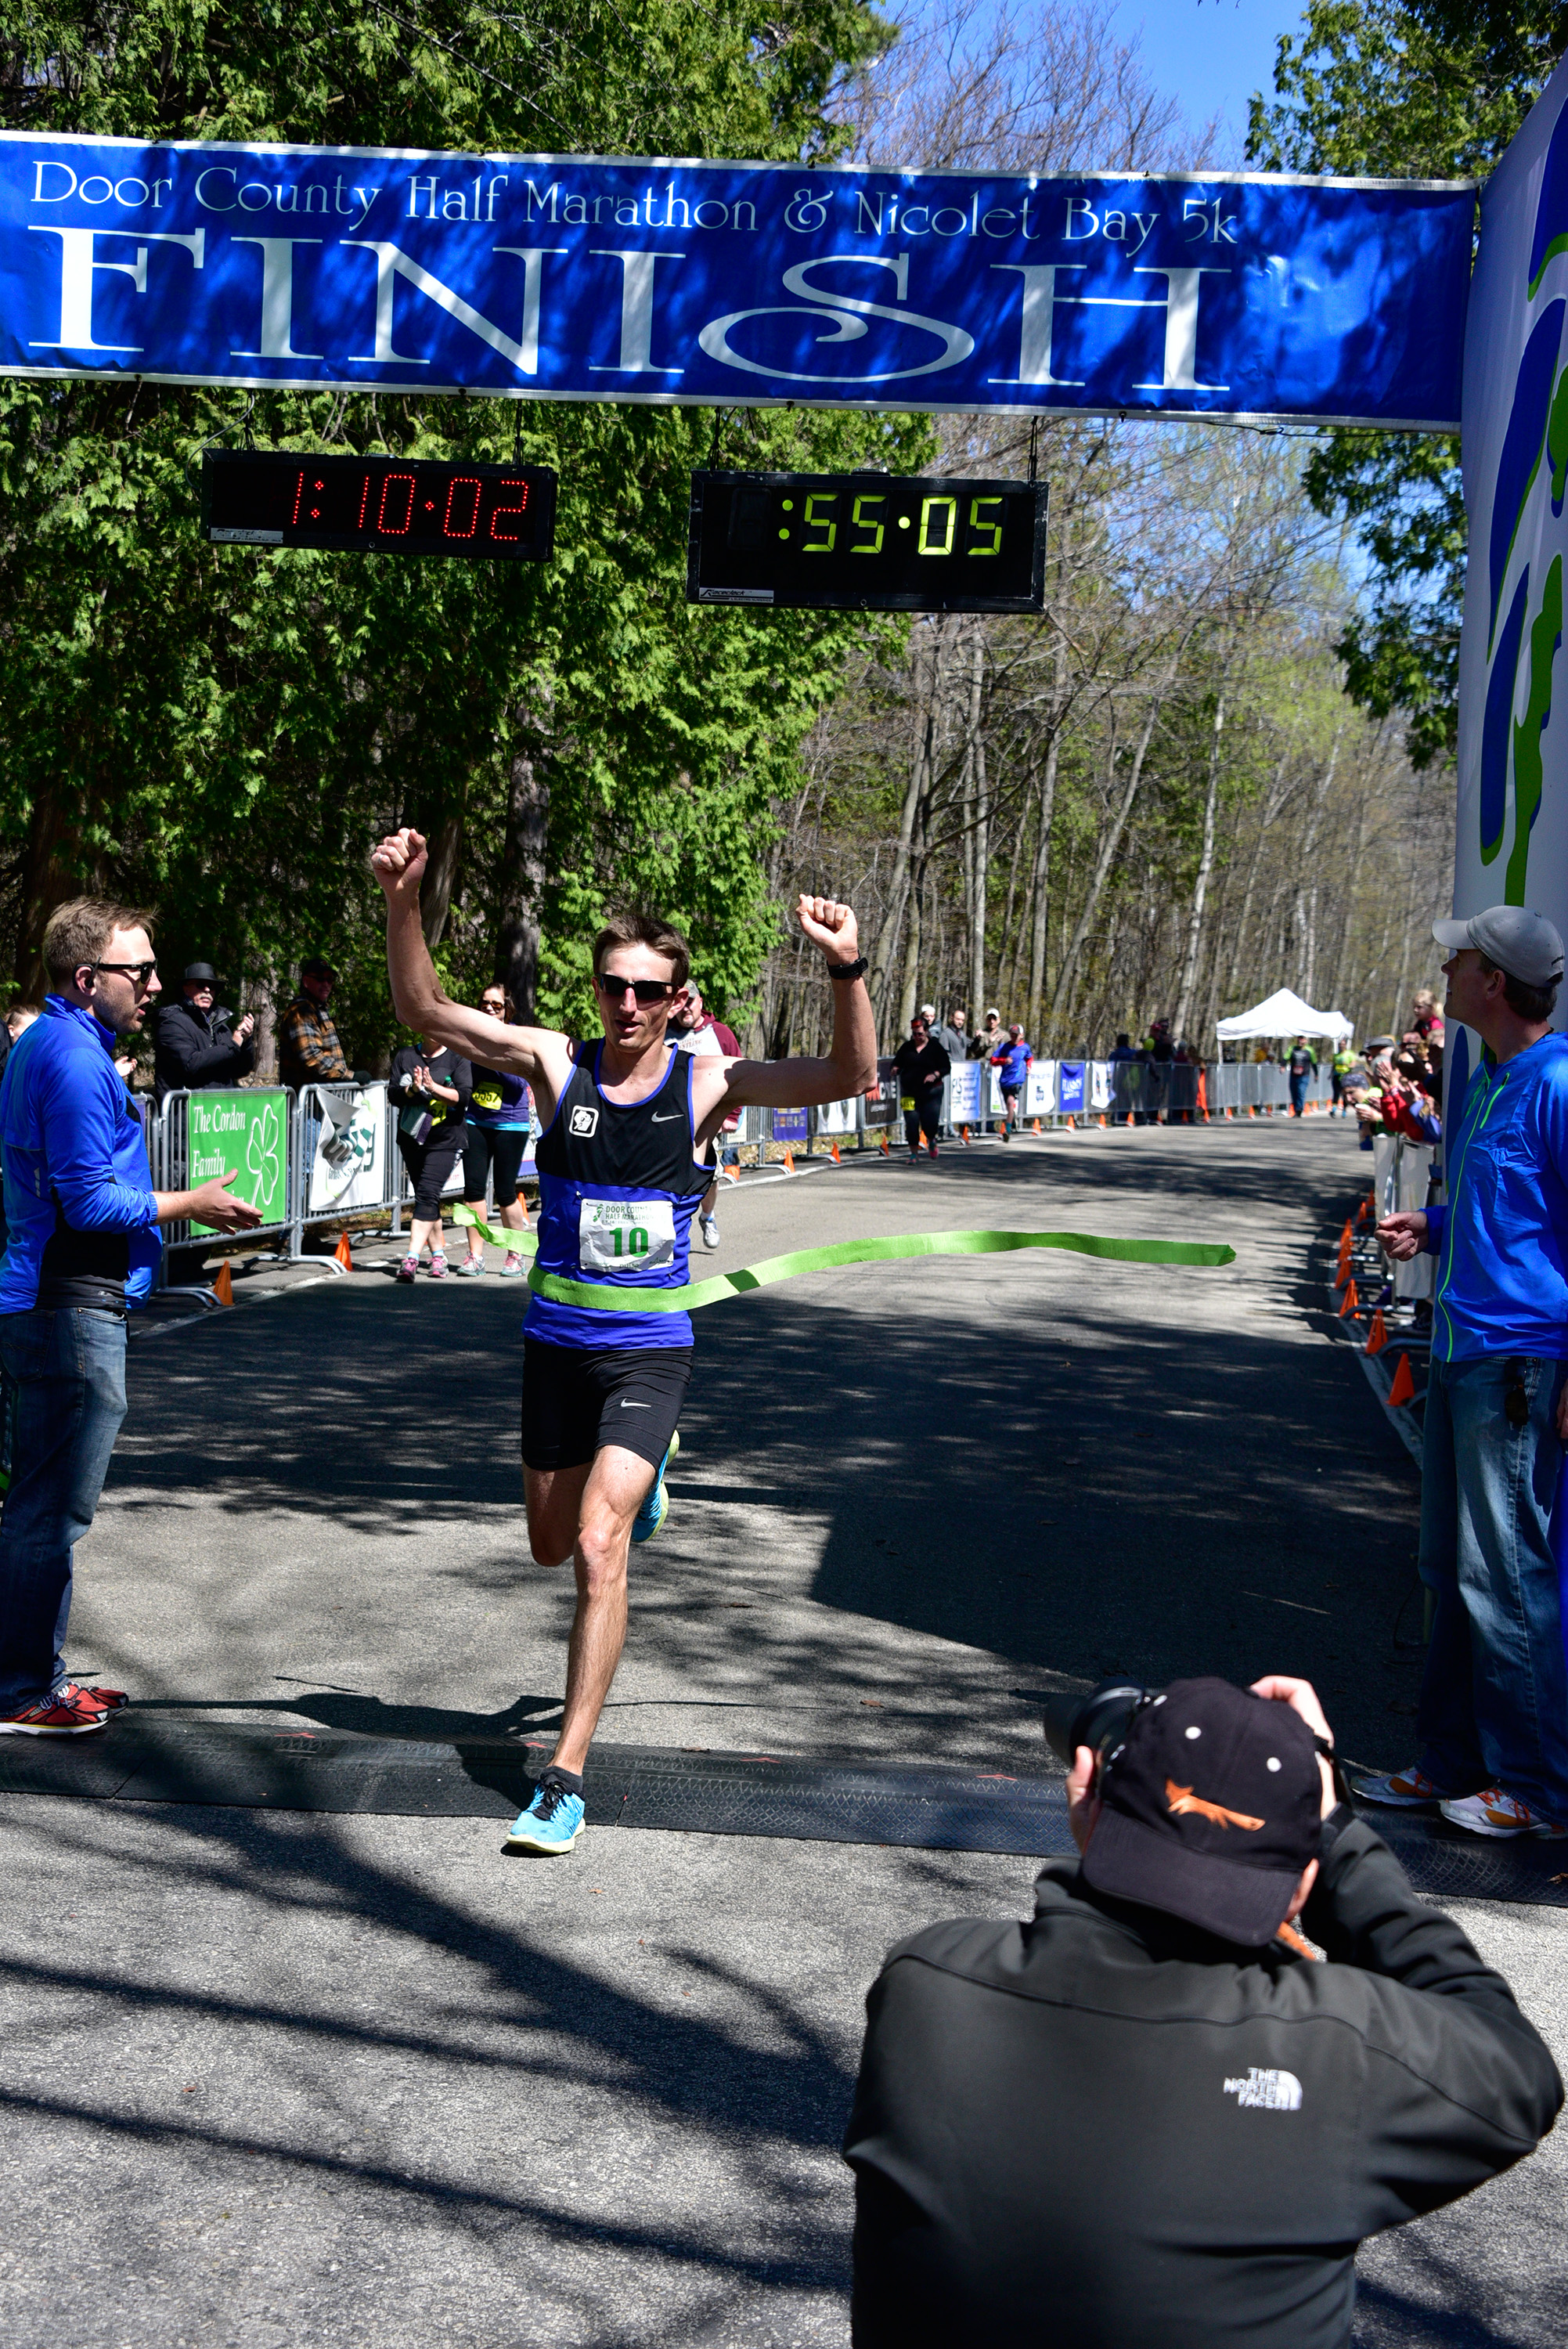 2016 Door County Half Marathon Held Saturday, May 7, 2016 In Peninsula  State Park